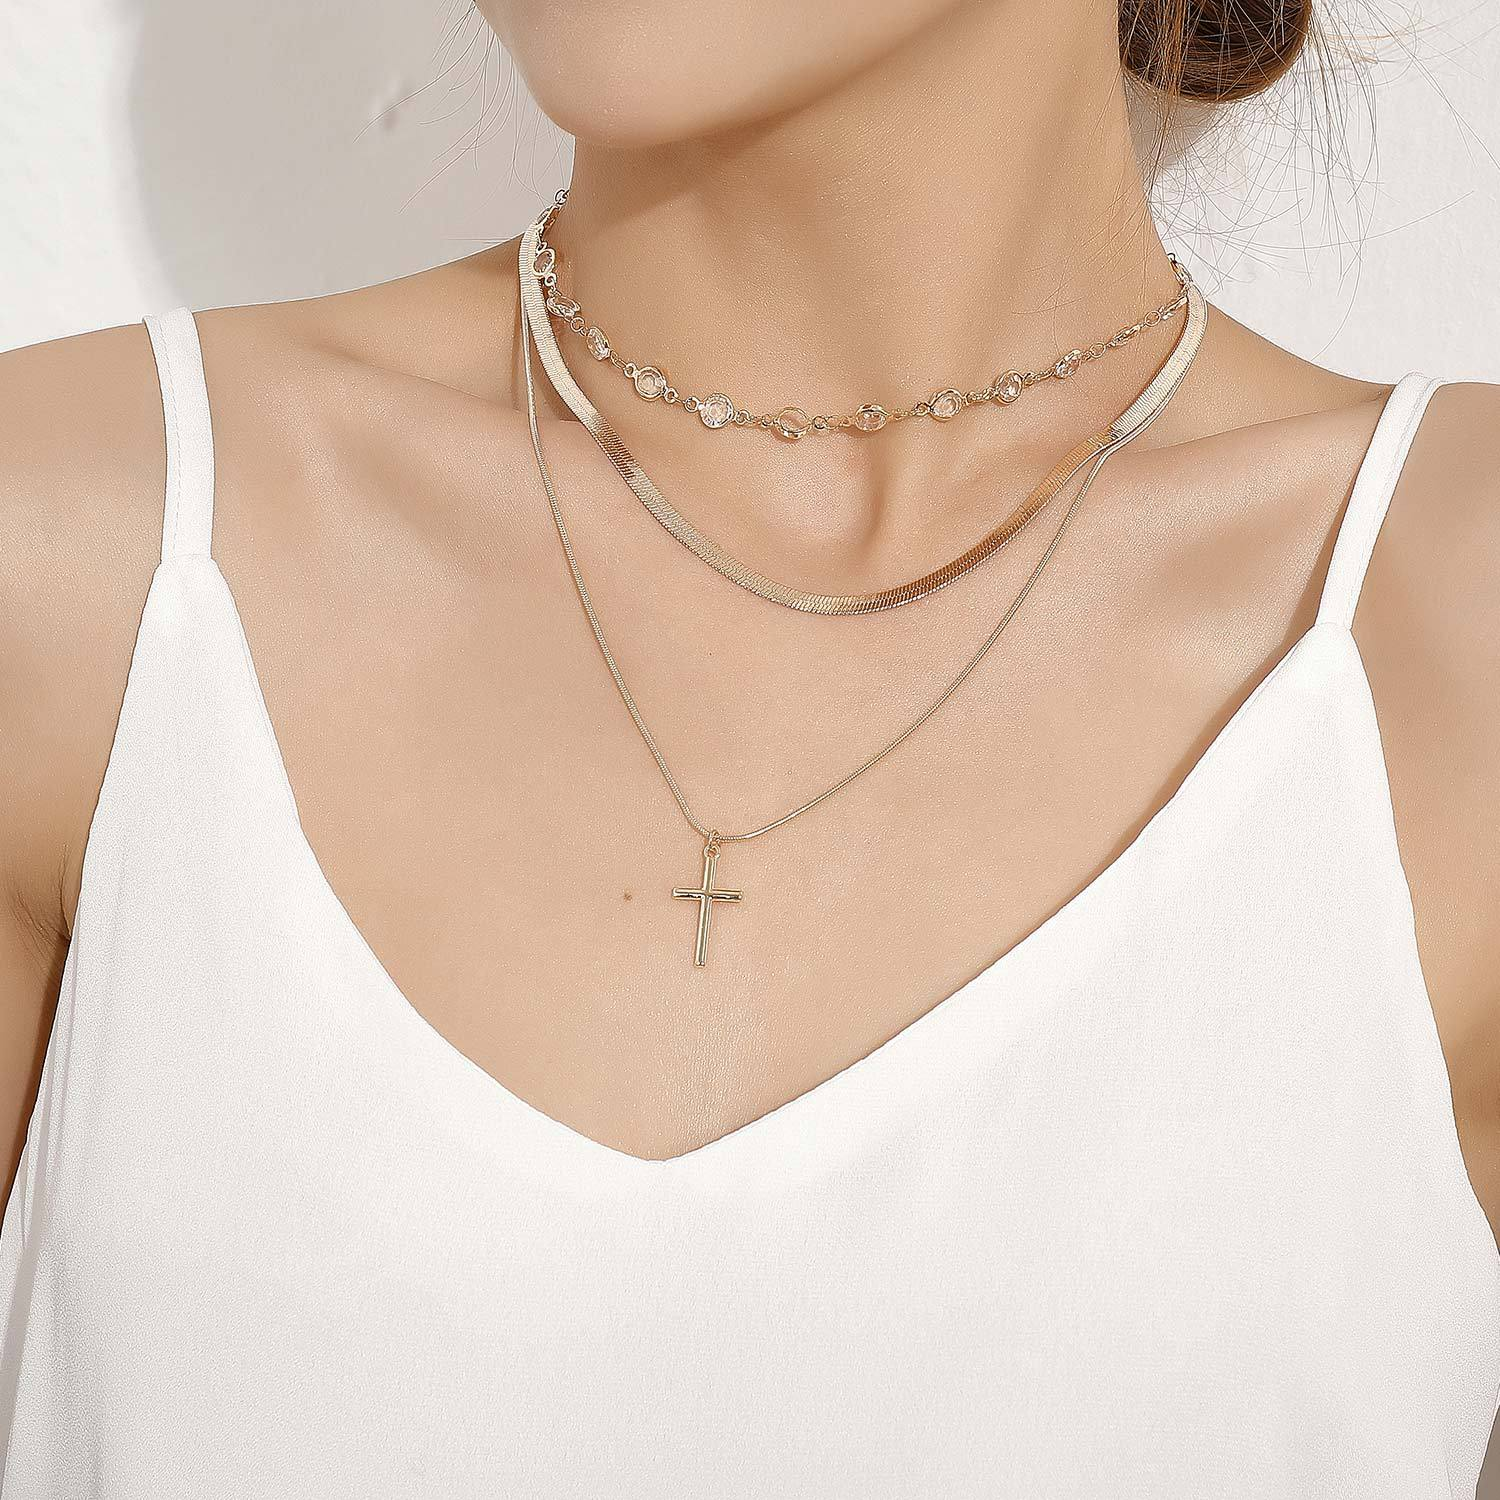 Cross Pendant Snake Clavicle Chain Rhinestone Choker Necklace for Women Gold Silver Color 2020 Fashion Jewelry Layered Necklaces